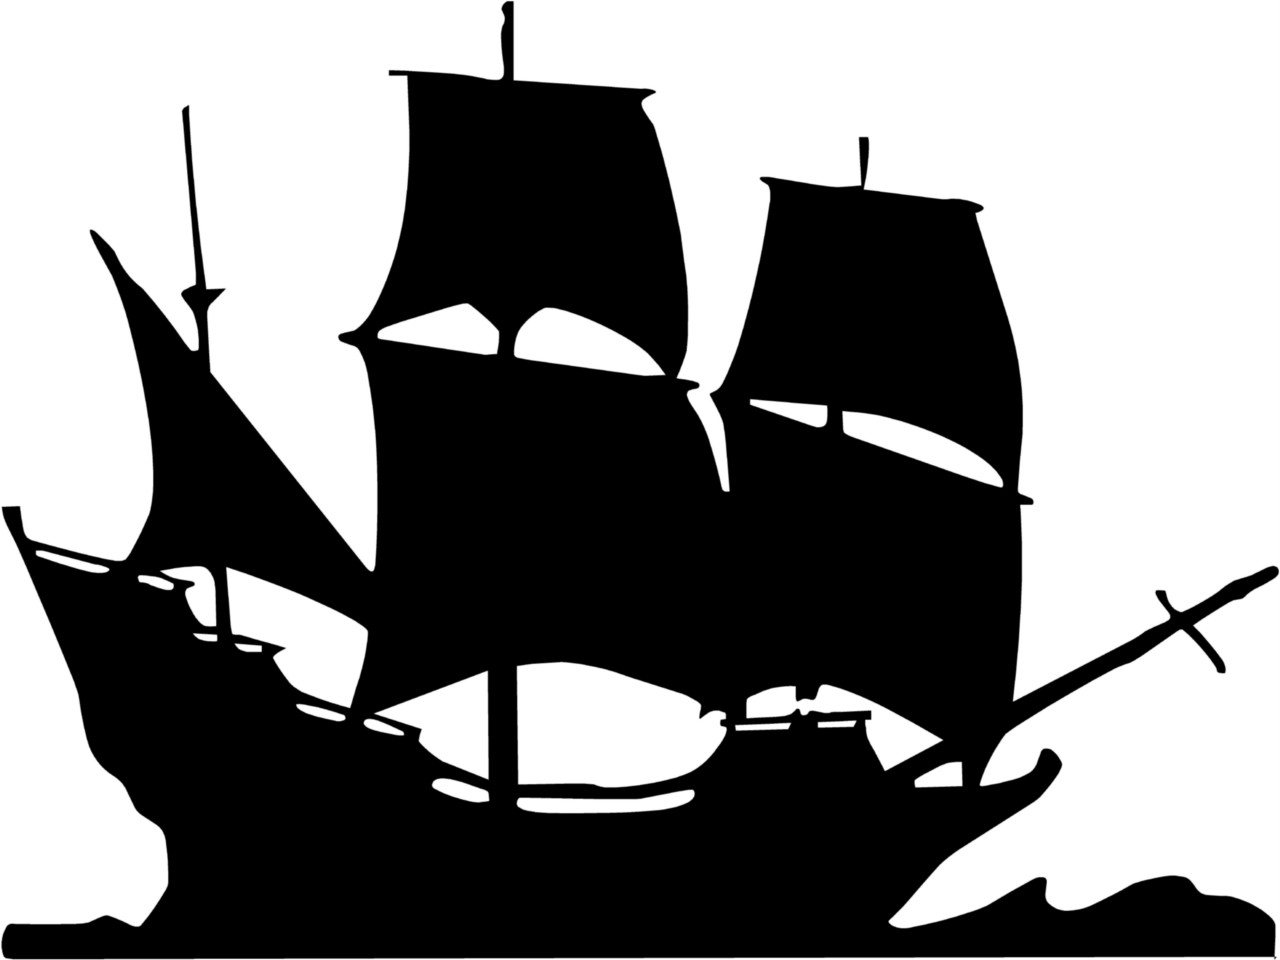 Pirate ship clip art black and white - photo#1